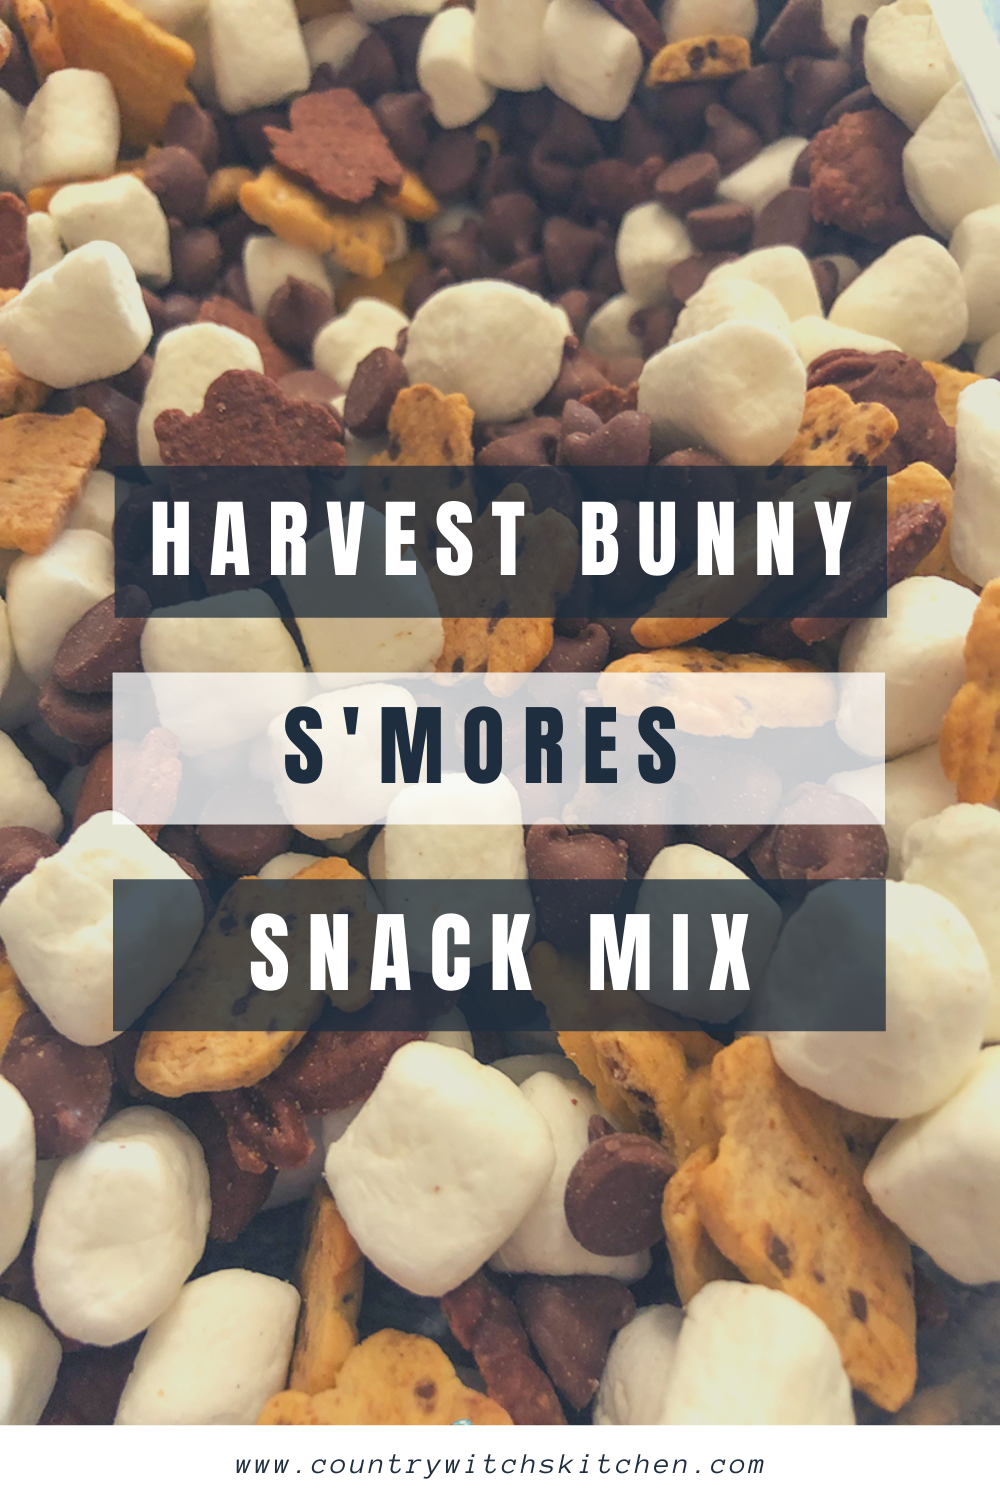 This s 'mores snack mix is the perfect mix of chocolate, marshmallow, and graham crackers for all of your fall adventures. #smores #snackmix #chocolatetreat #trailmix